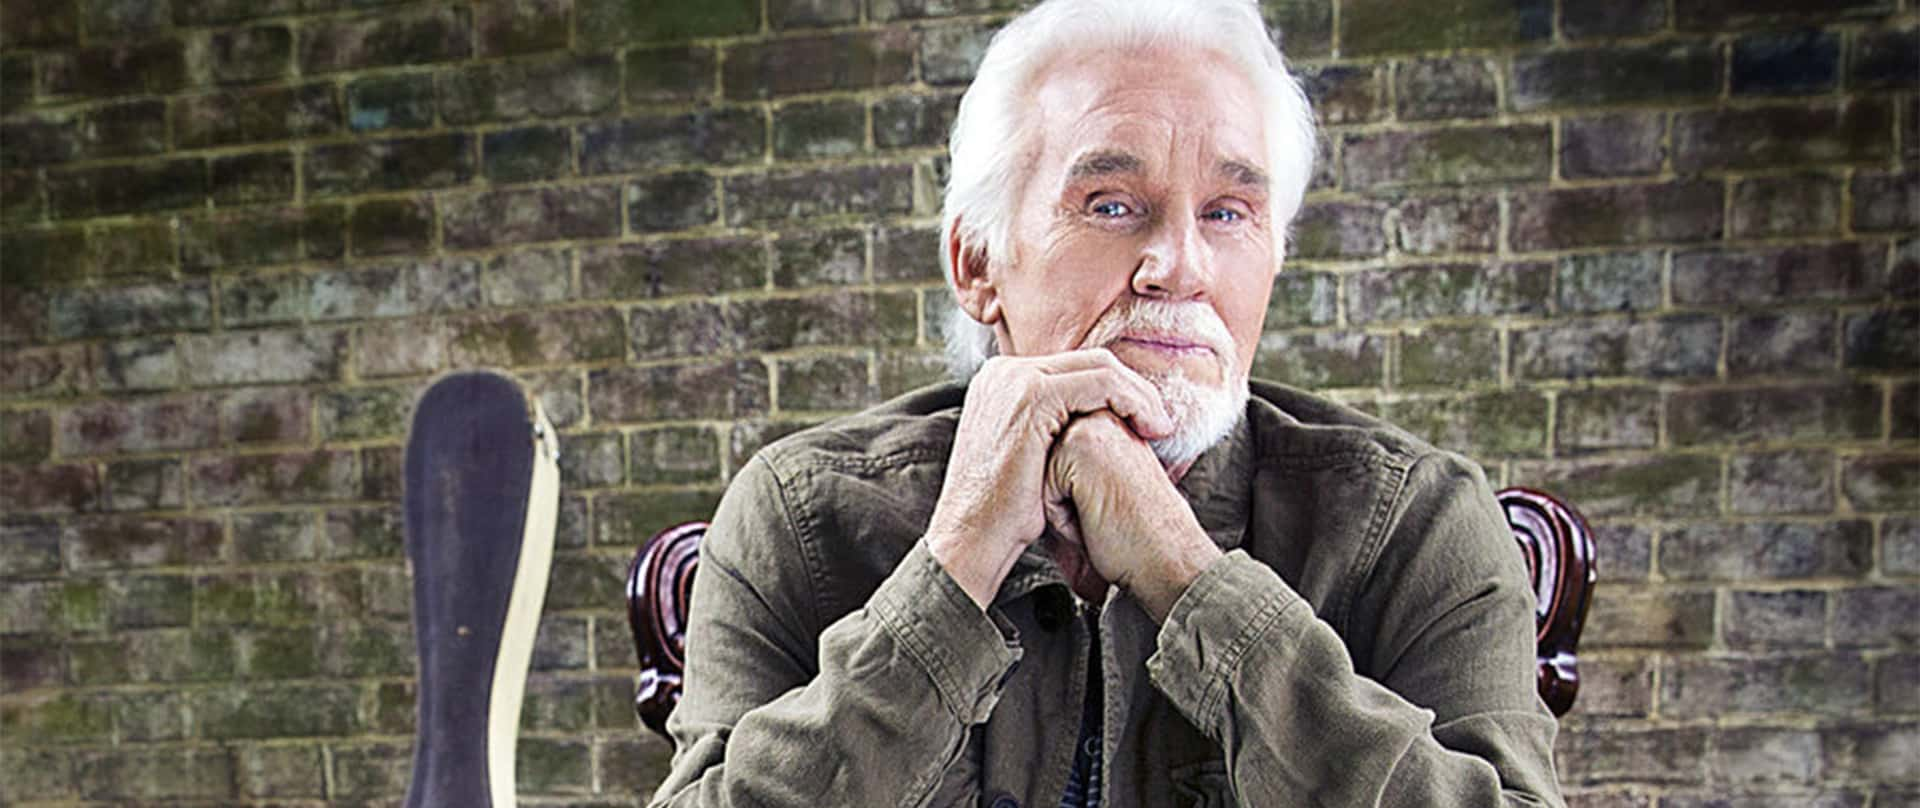 fistful kenny rogers blog header